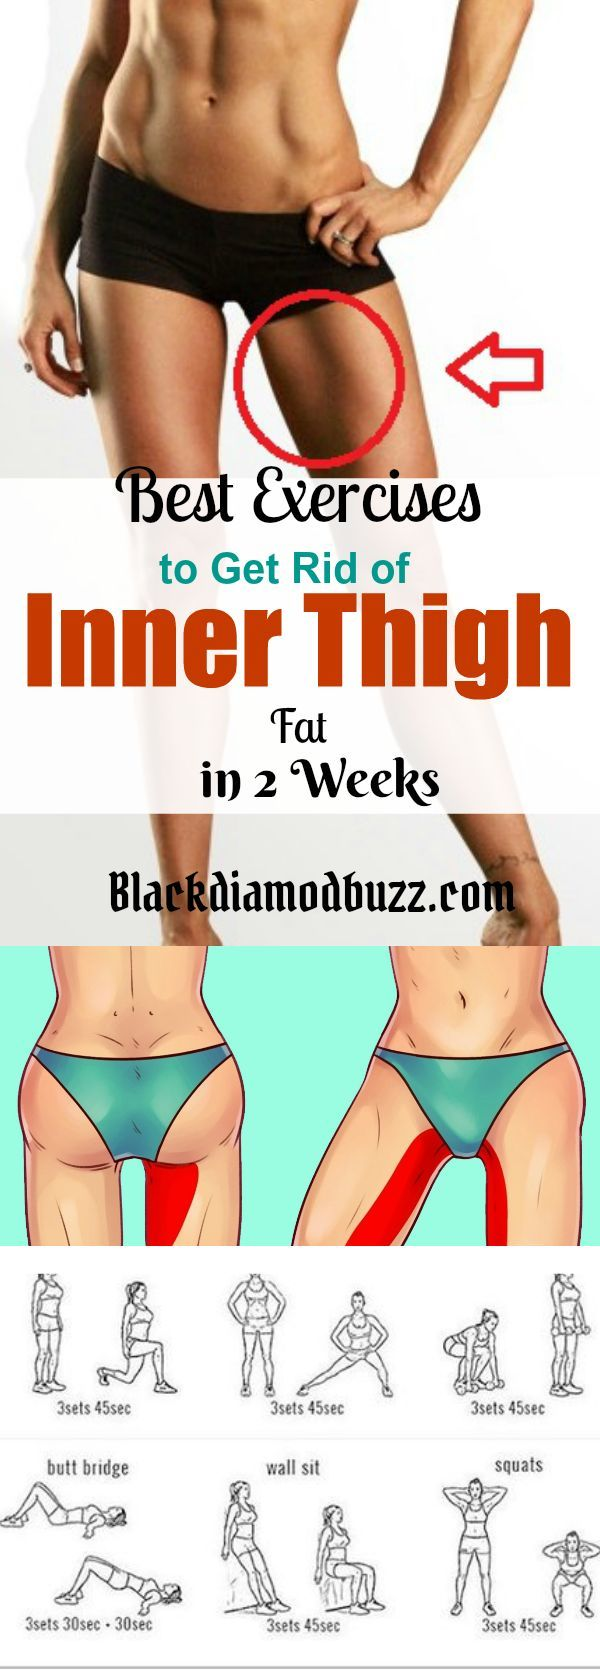 Best Exercises to Get Rid of Inner Thigh Fat Fast and Tone Legs in 2 Weeks. #innerthighworkout. https://www.blackdiamondbuzz.com/best-exercises-to-tone-legs-and-inner-thighs/